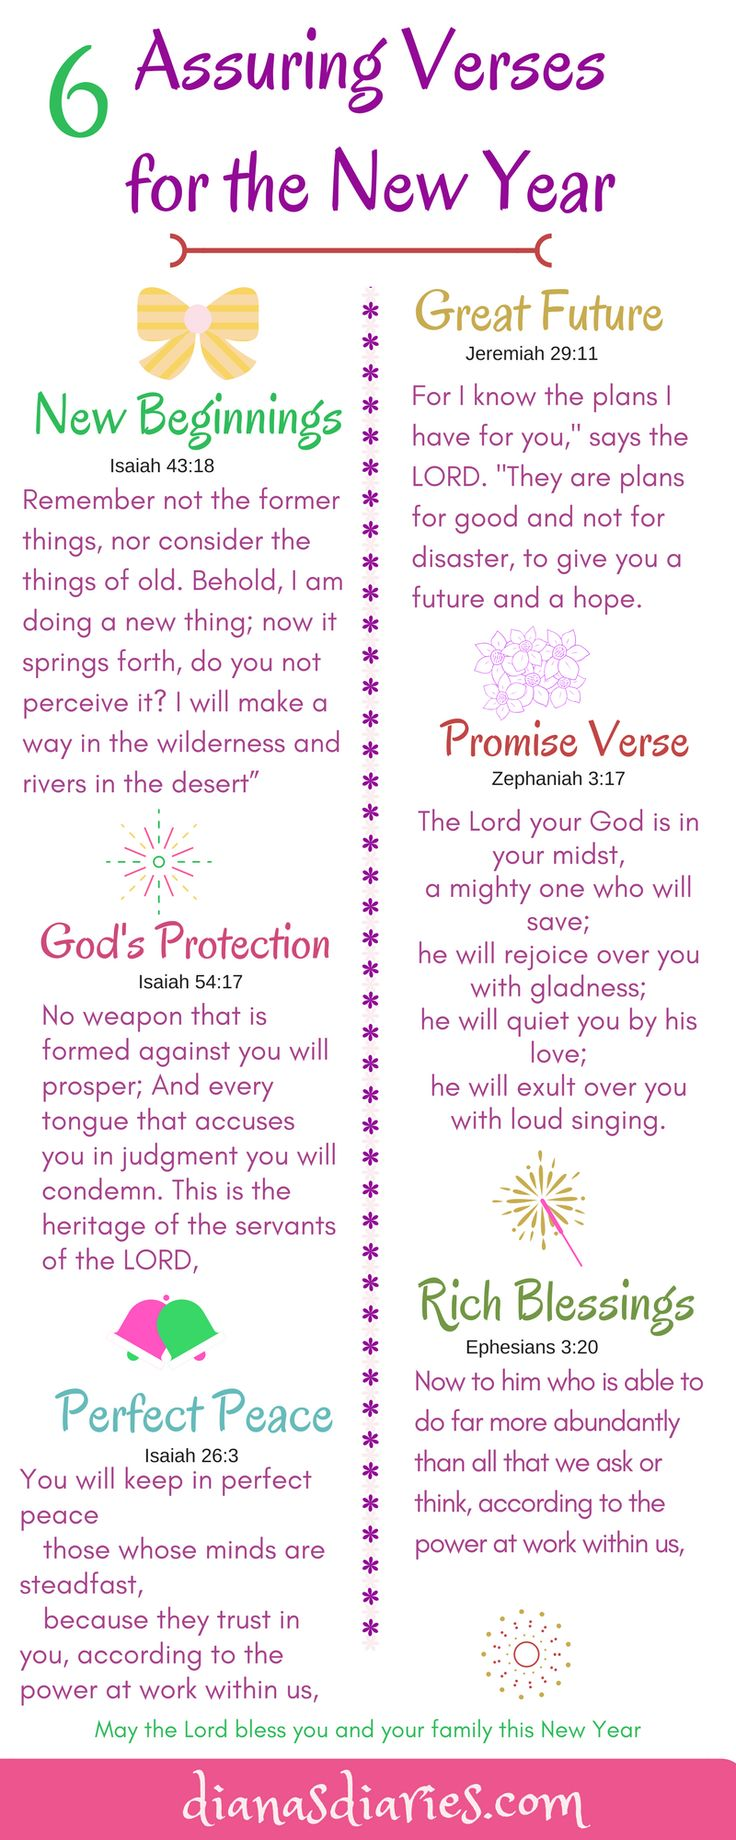 Best 25 new year new beginning ideas on pinterest new beginning may the lord god enrich your new year with new beginnings away from your past hexwebz Images